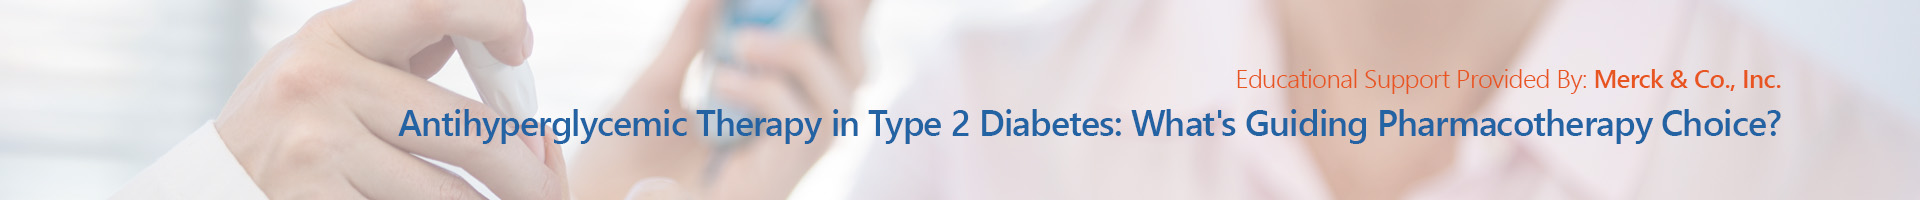 Merck_Diabetes_62818